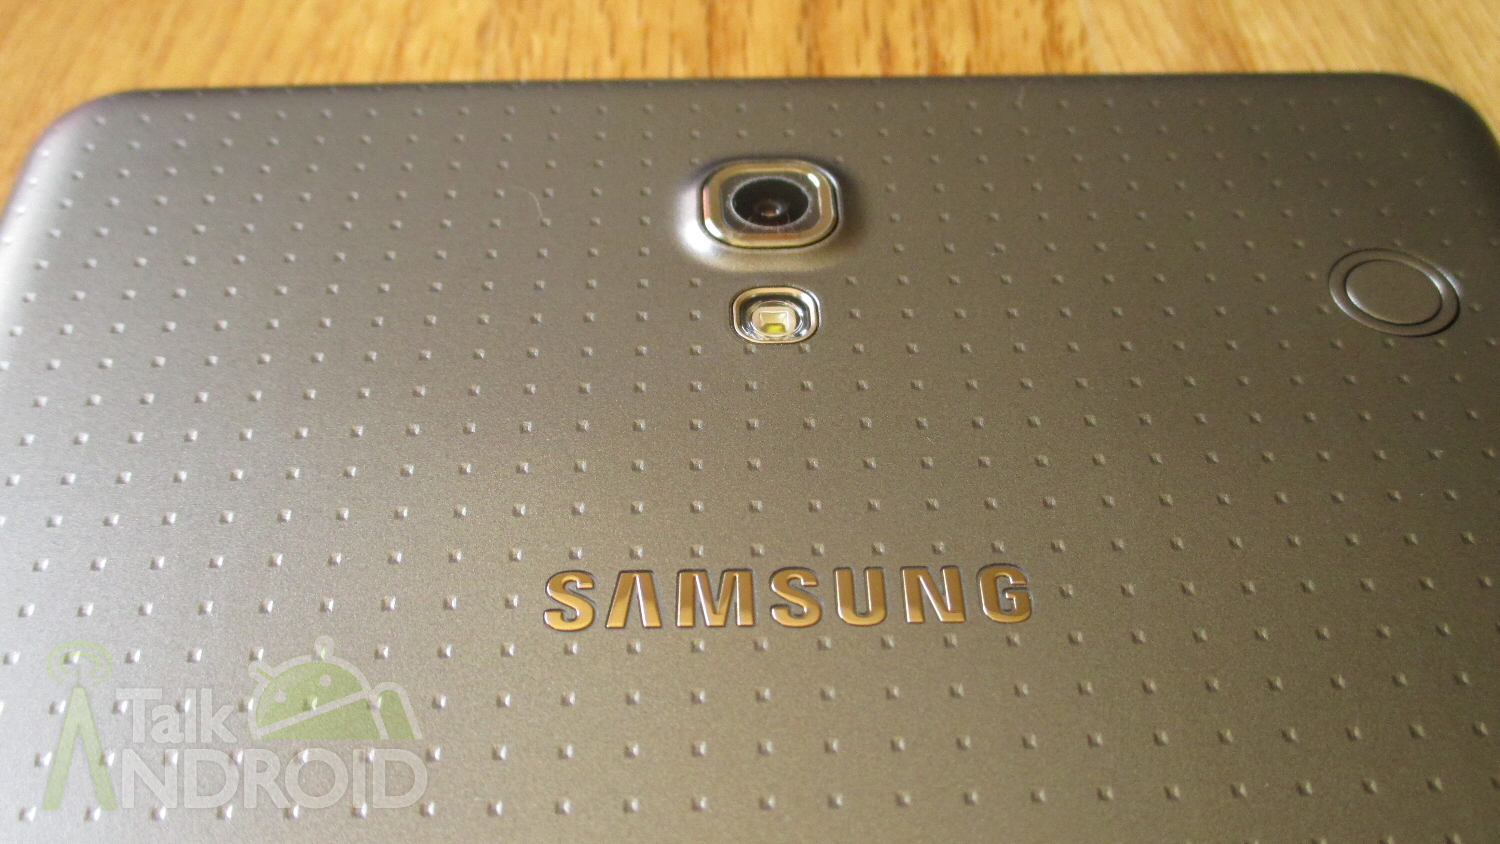 Samsung Galaxy Tab S 2 specifications leaked, only 5.4mm thick along with 8 and 9.7-inch options